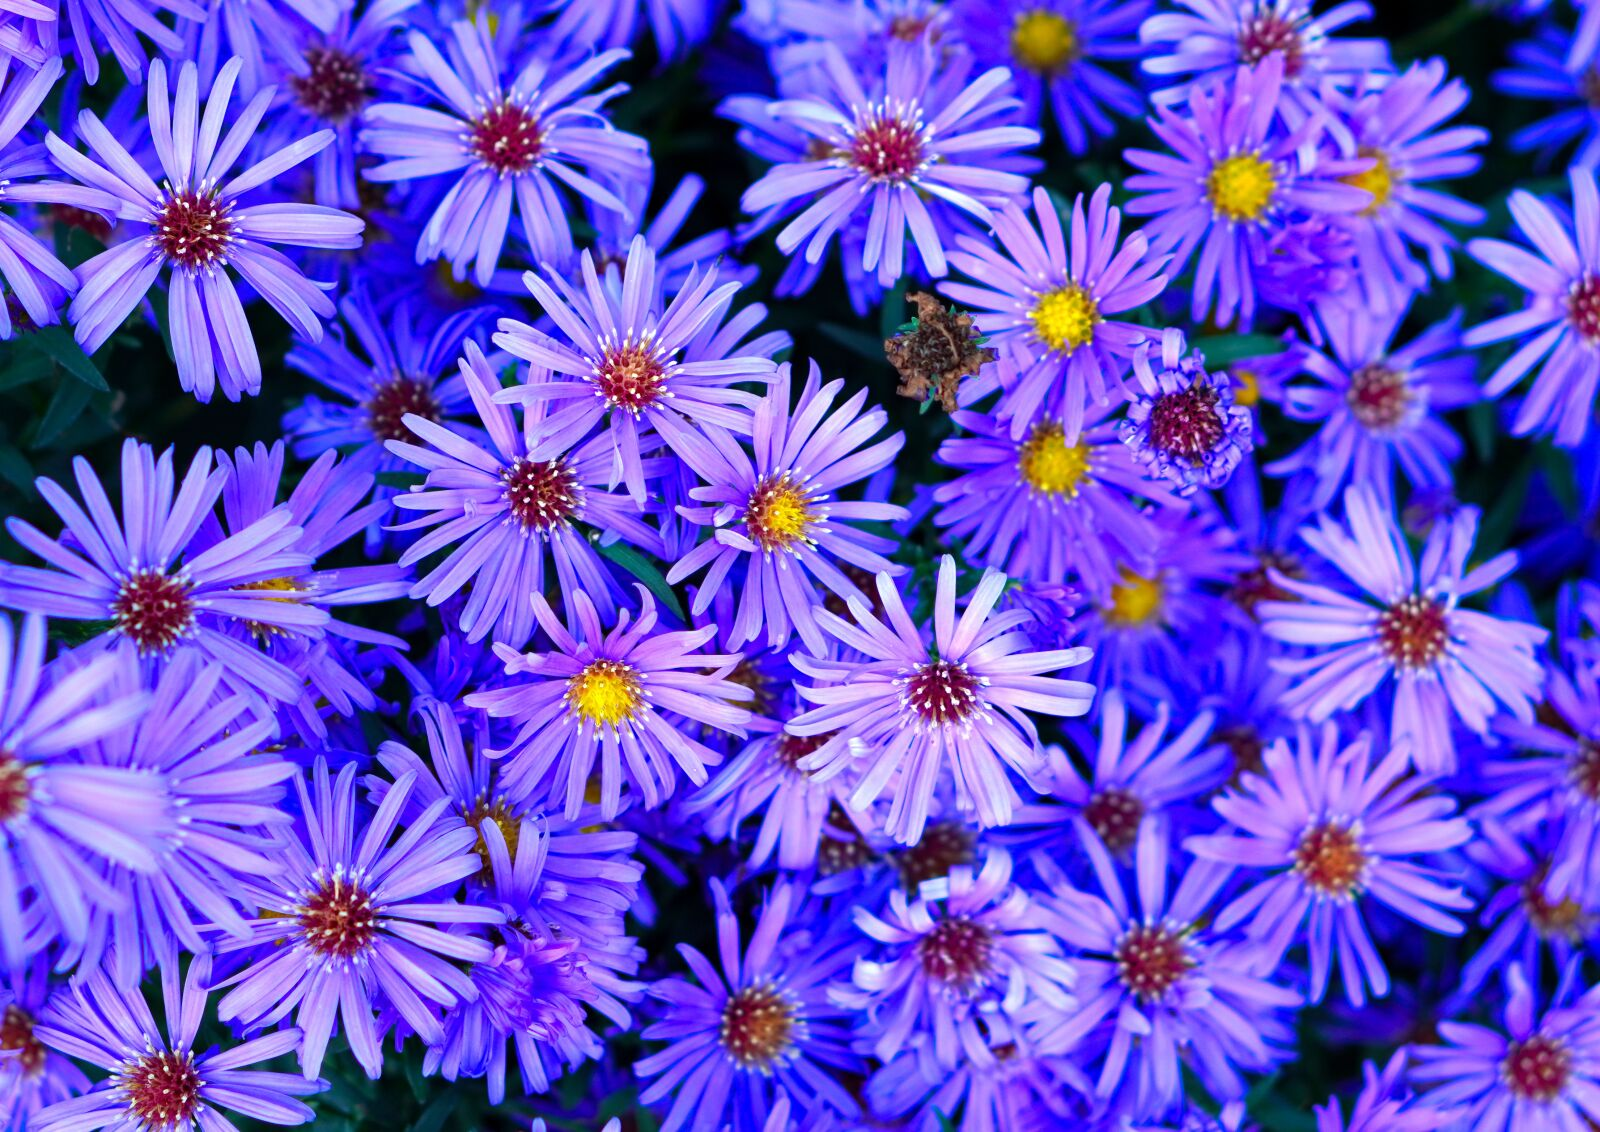 """Sony a6400 sample photo. """"Flowers, asters, garden"""" photography"""